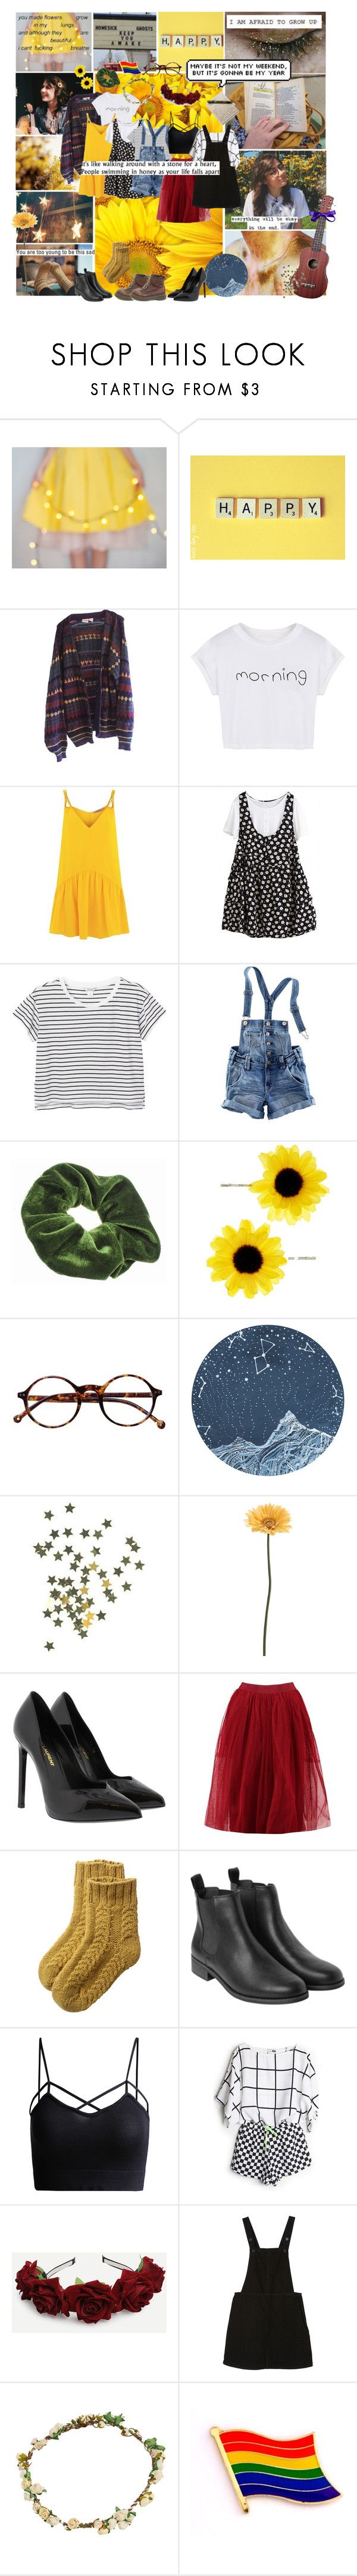 """""""Dodie Clark - doddleoddle"""" by smol-snowflake ❤ liked on Polyvore featuring Retrò, ...Lost, WithChic, Lazul, Monki, H&M, Accessorize, Gerber, Yves Saint Laurent and Boohoo"""